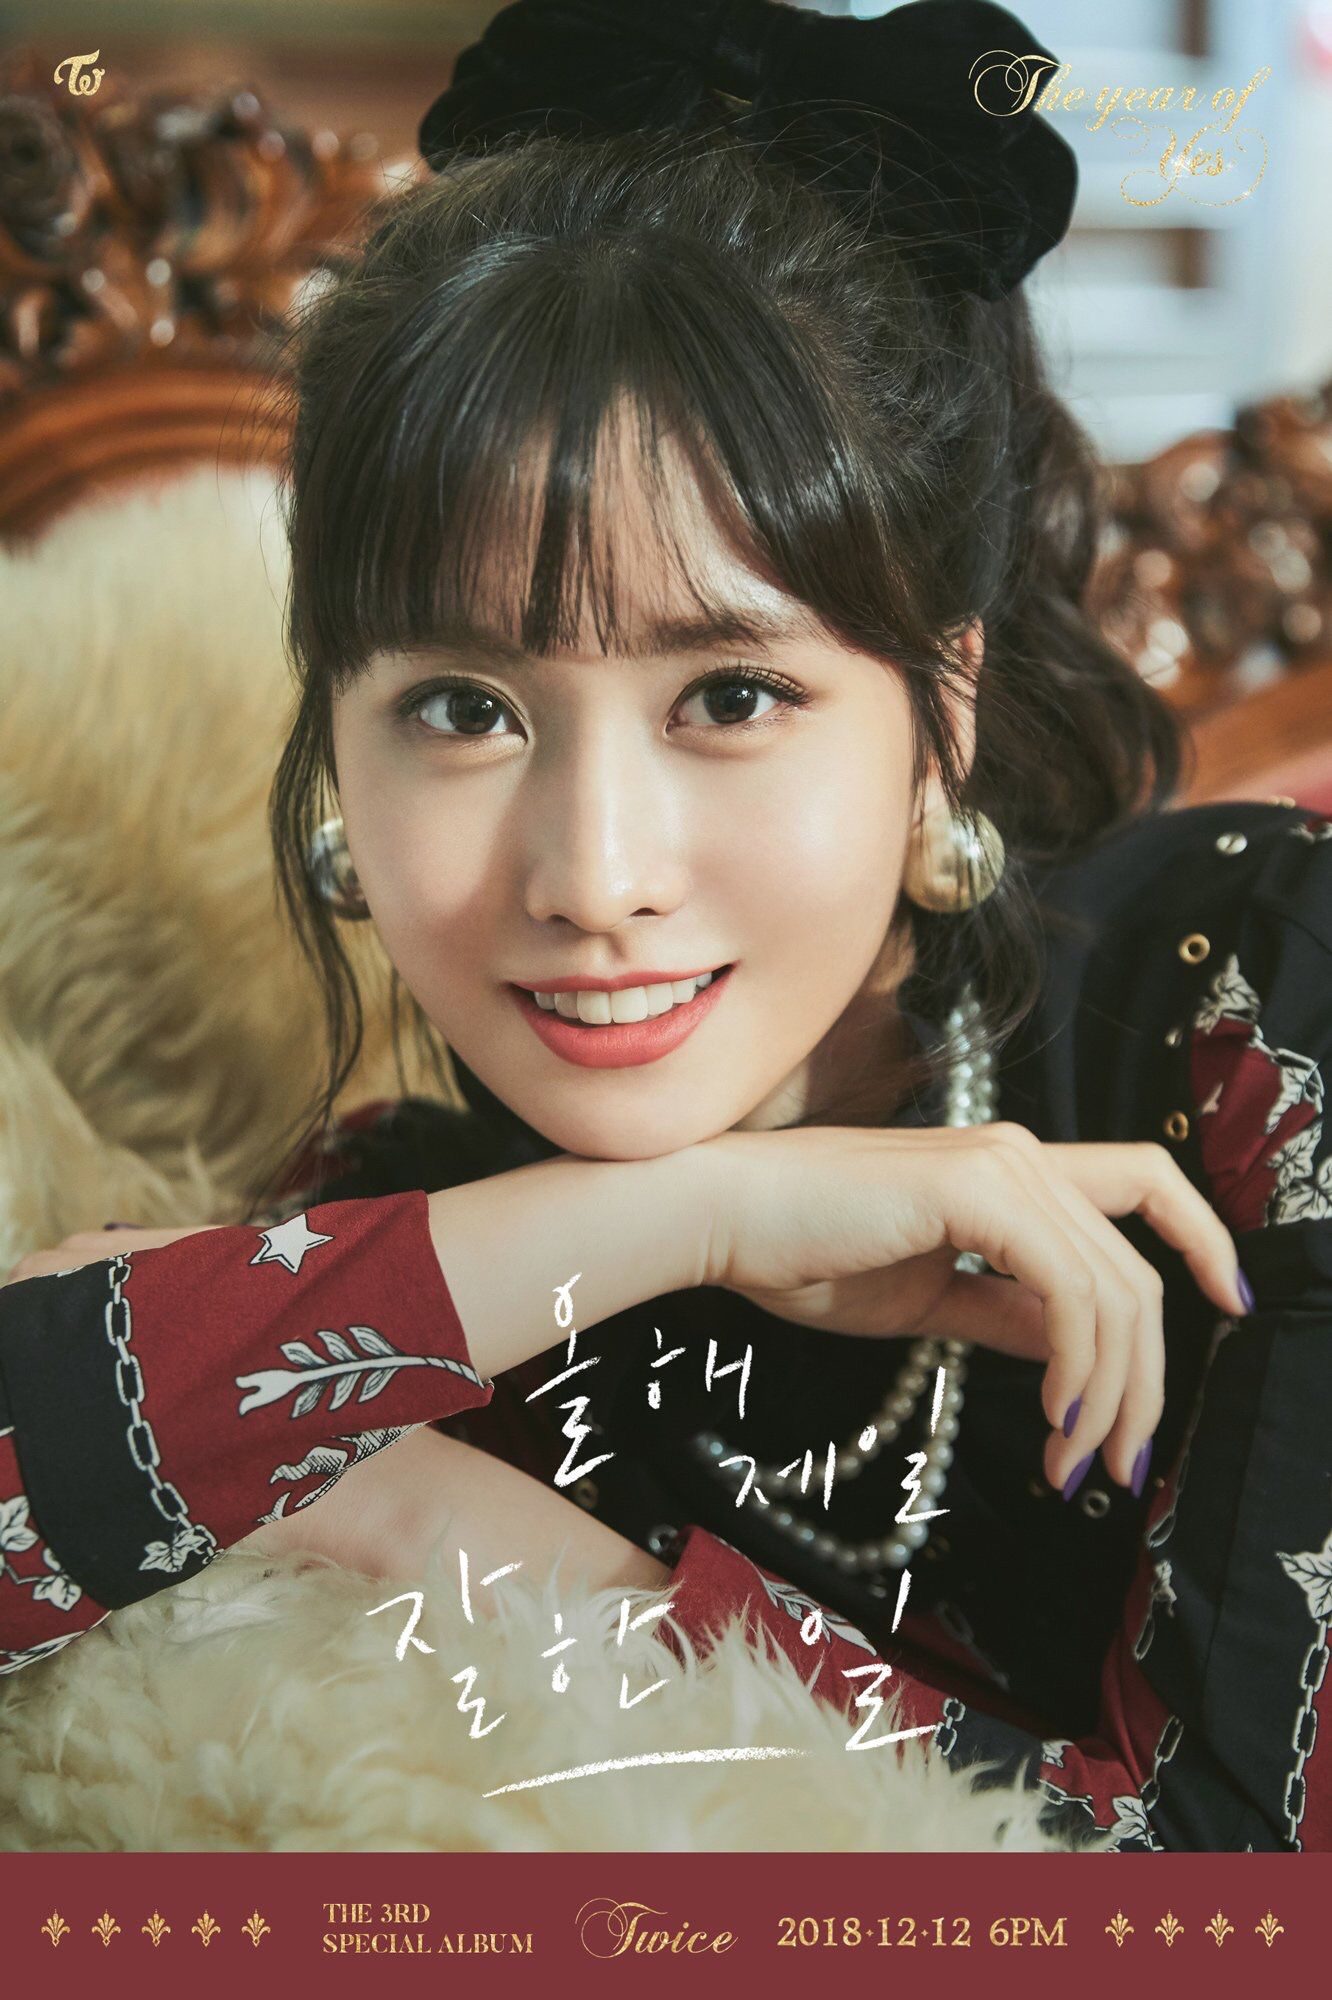 MOMO — The year of